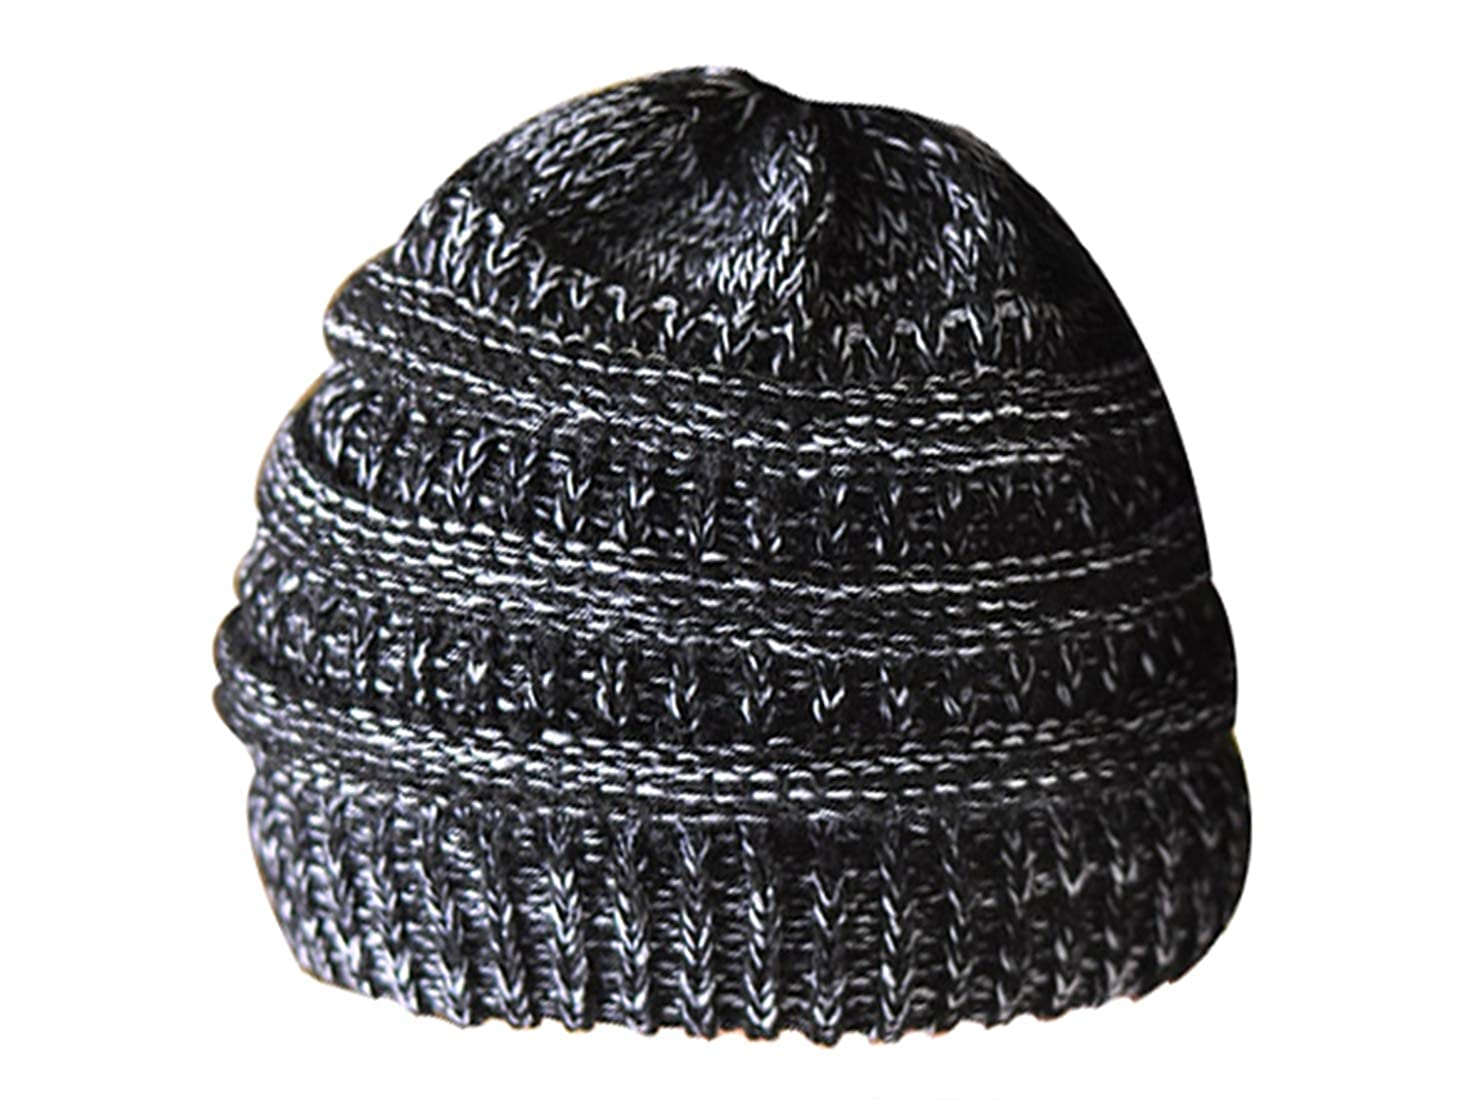 daba07bd9f321 Womens Ponytail Messy Bun Beanie Solid Ribbed Hat Cap for Winter Autumn  (Black)  Amazon.co.uk  Clothing